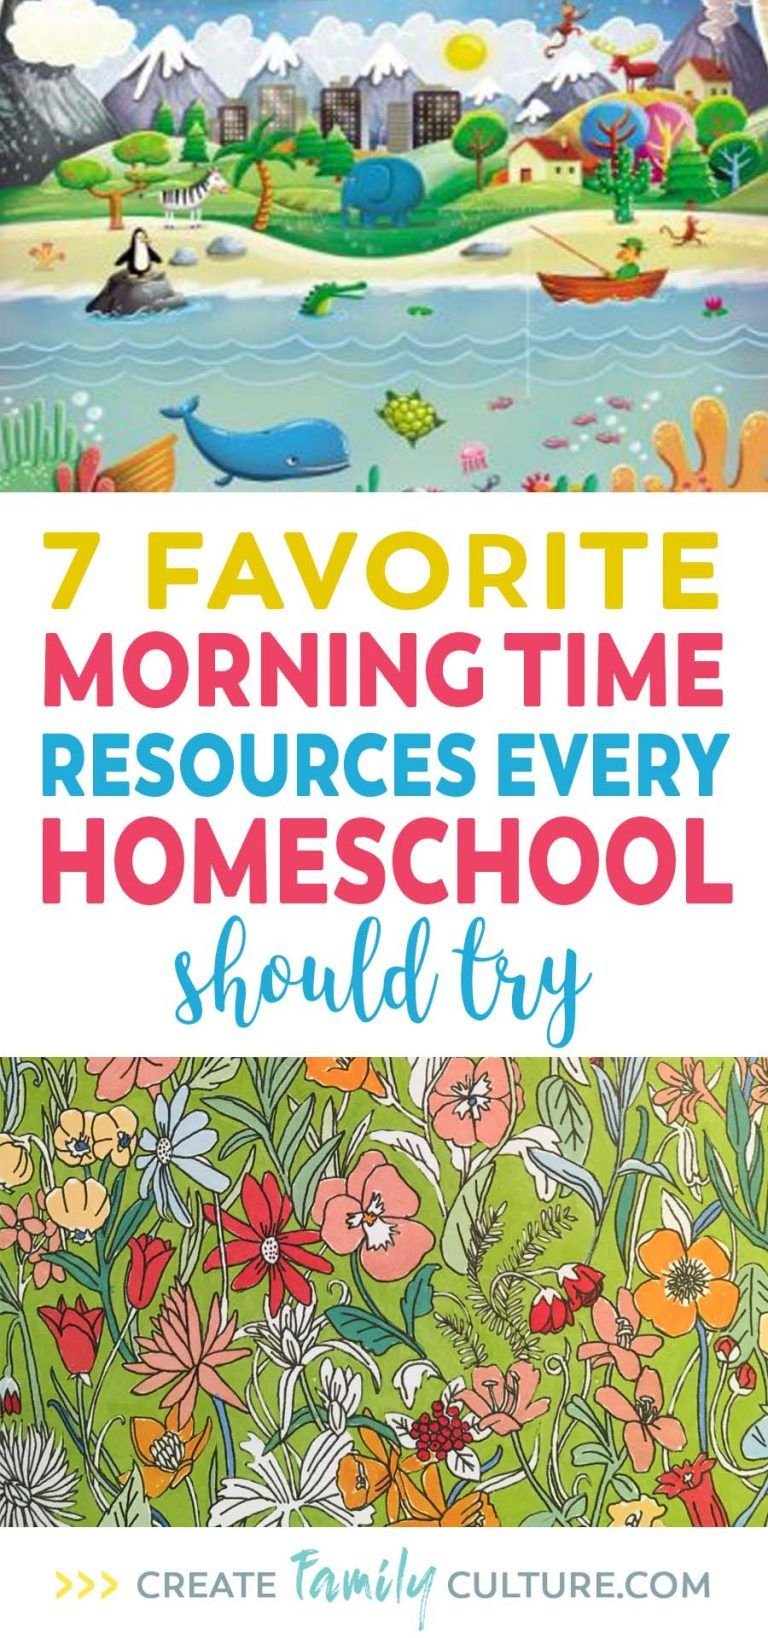 Photo of 7 Favorite Homeschool Morning Time Resources – Create Family Culture